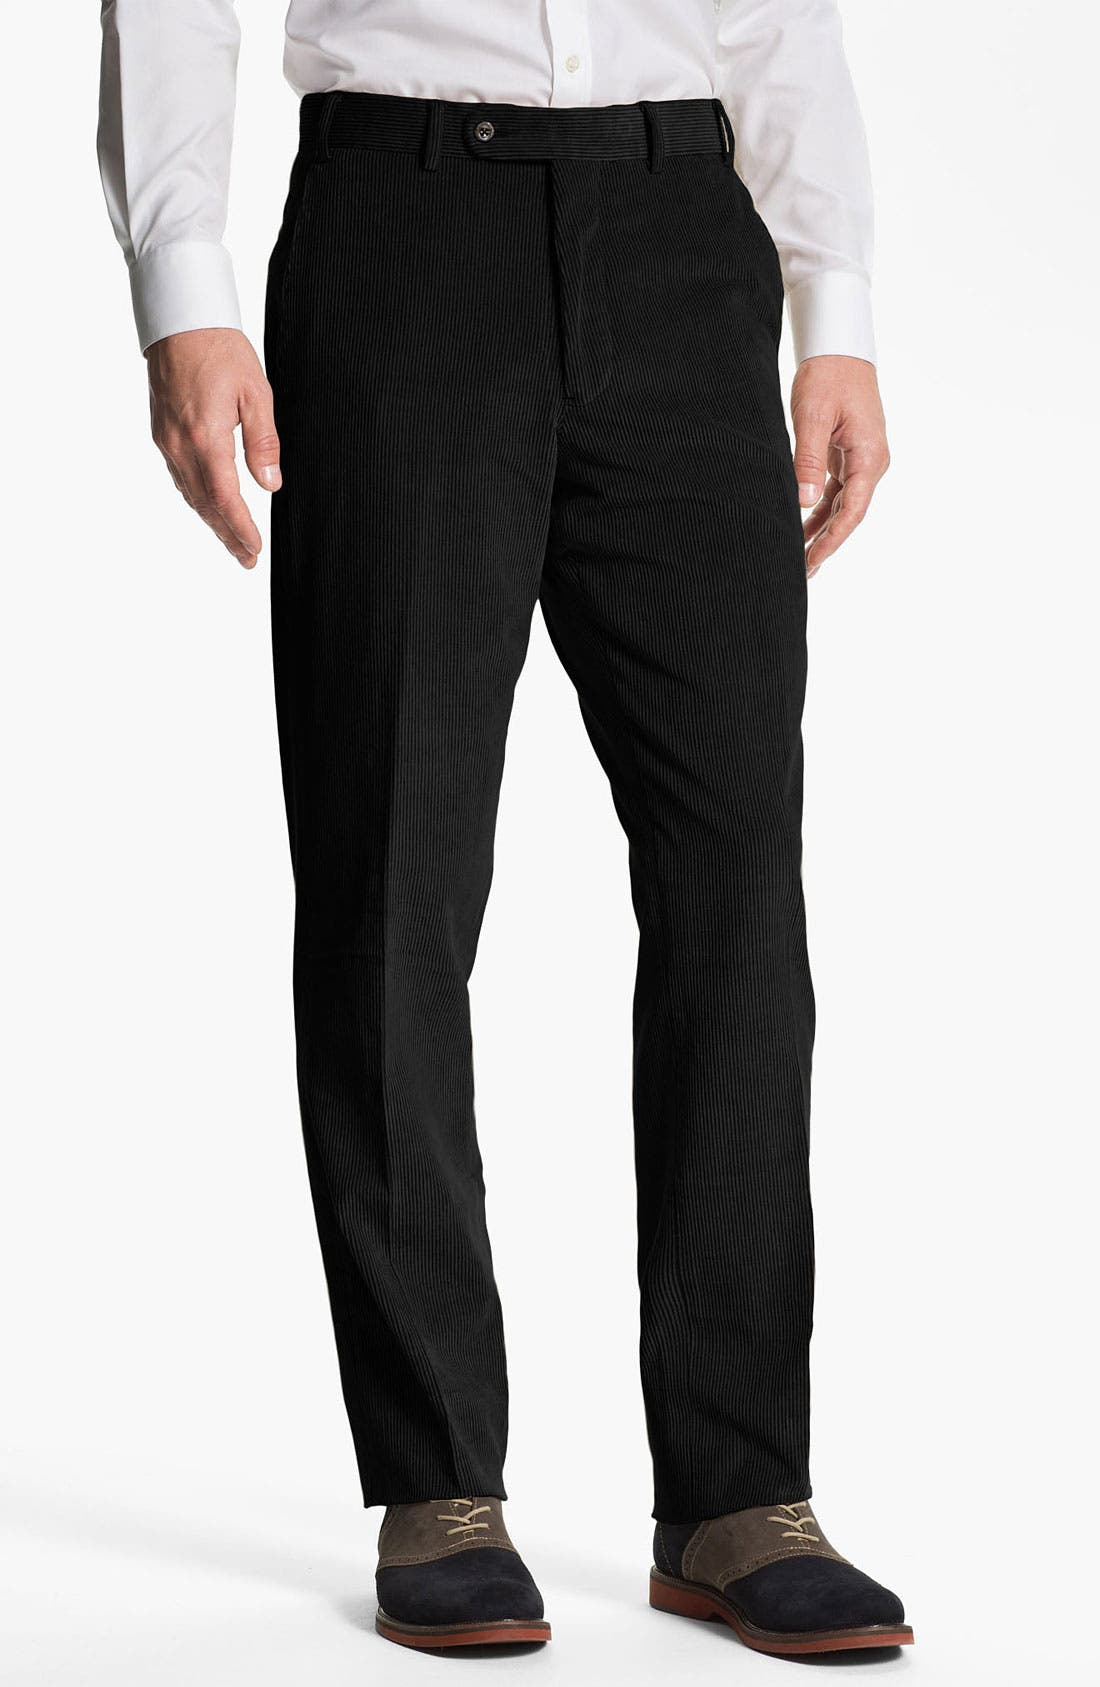 Main Image - JB Britches Flat Front Corduroy Trousers